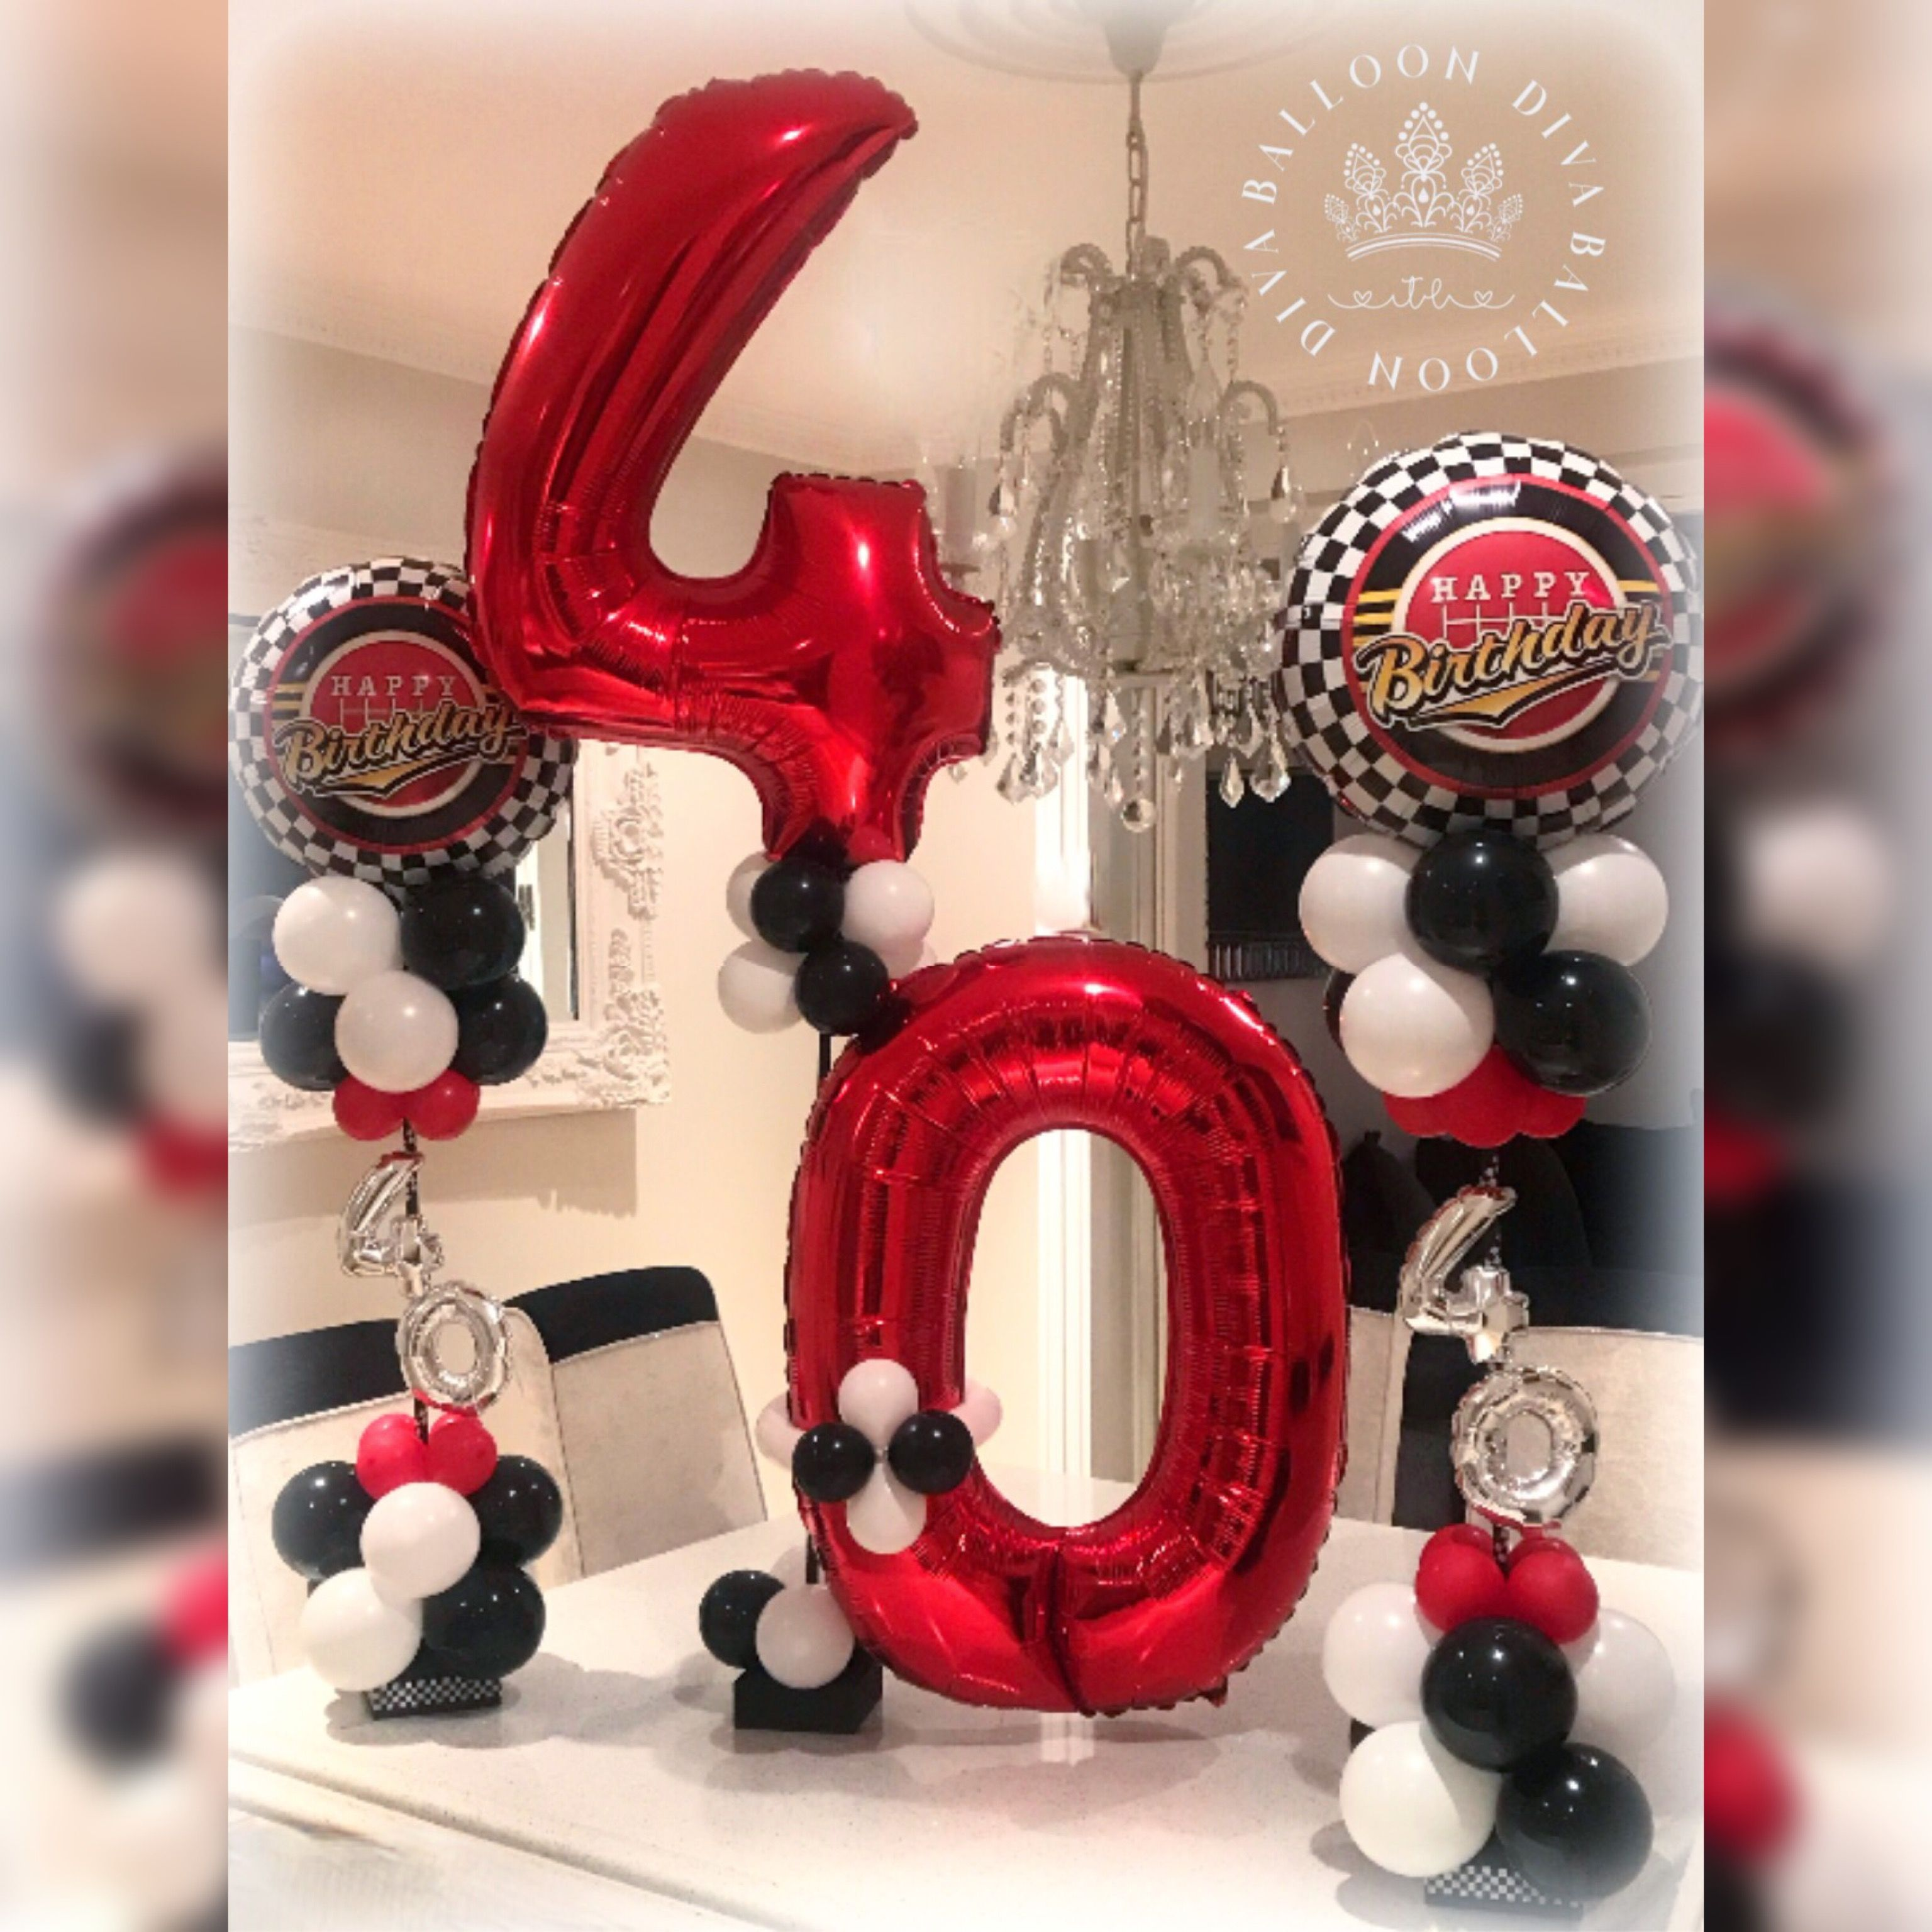 Pin by Norma Flores on Birthdays in 2020 Balloons, Party